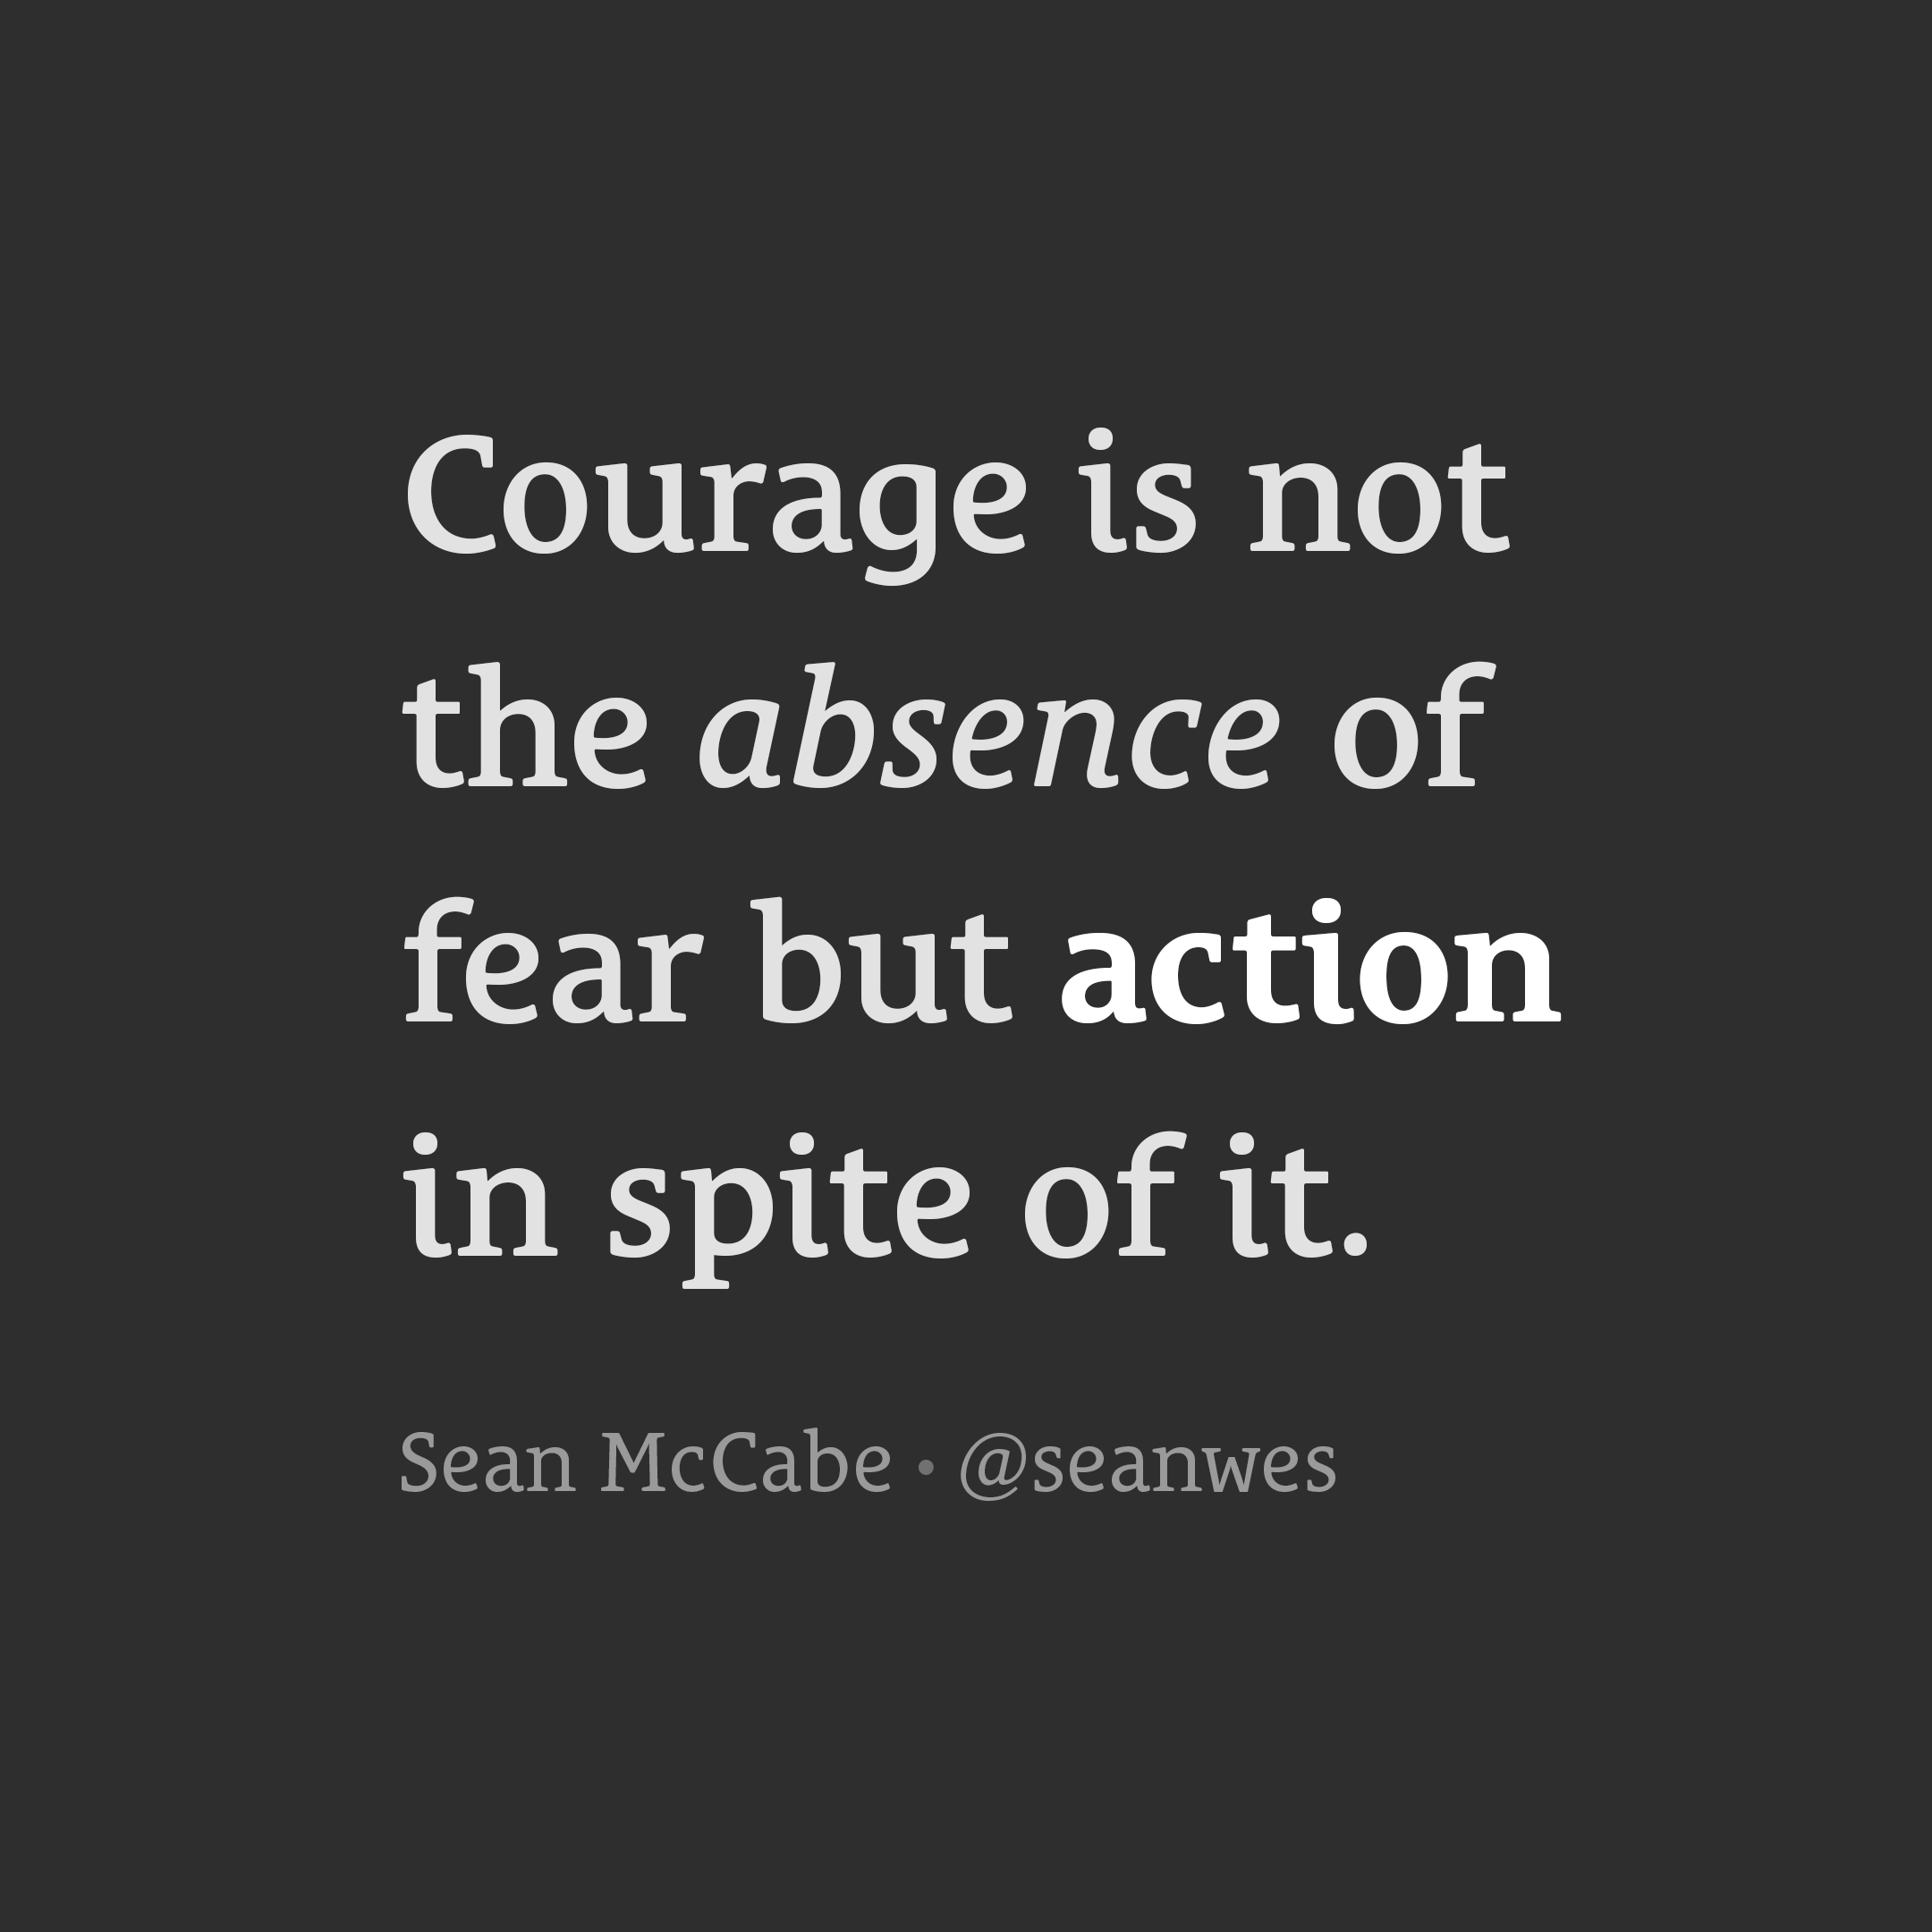 Courage is not the absence of fear.